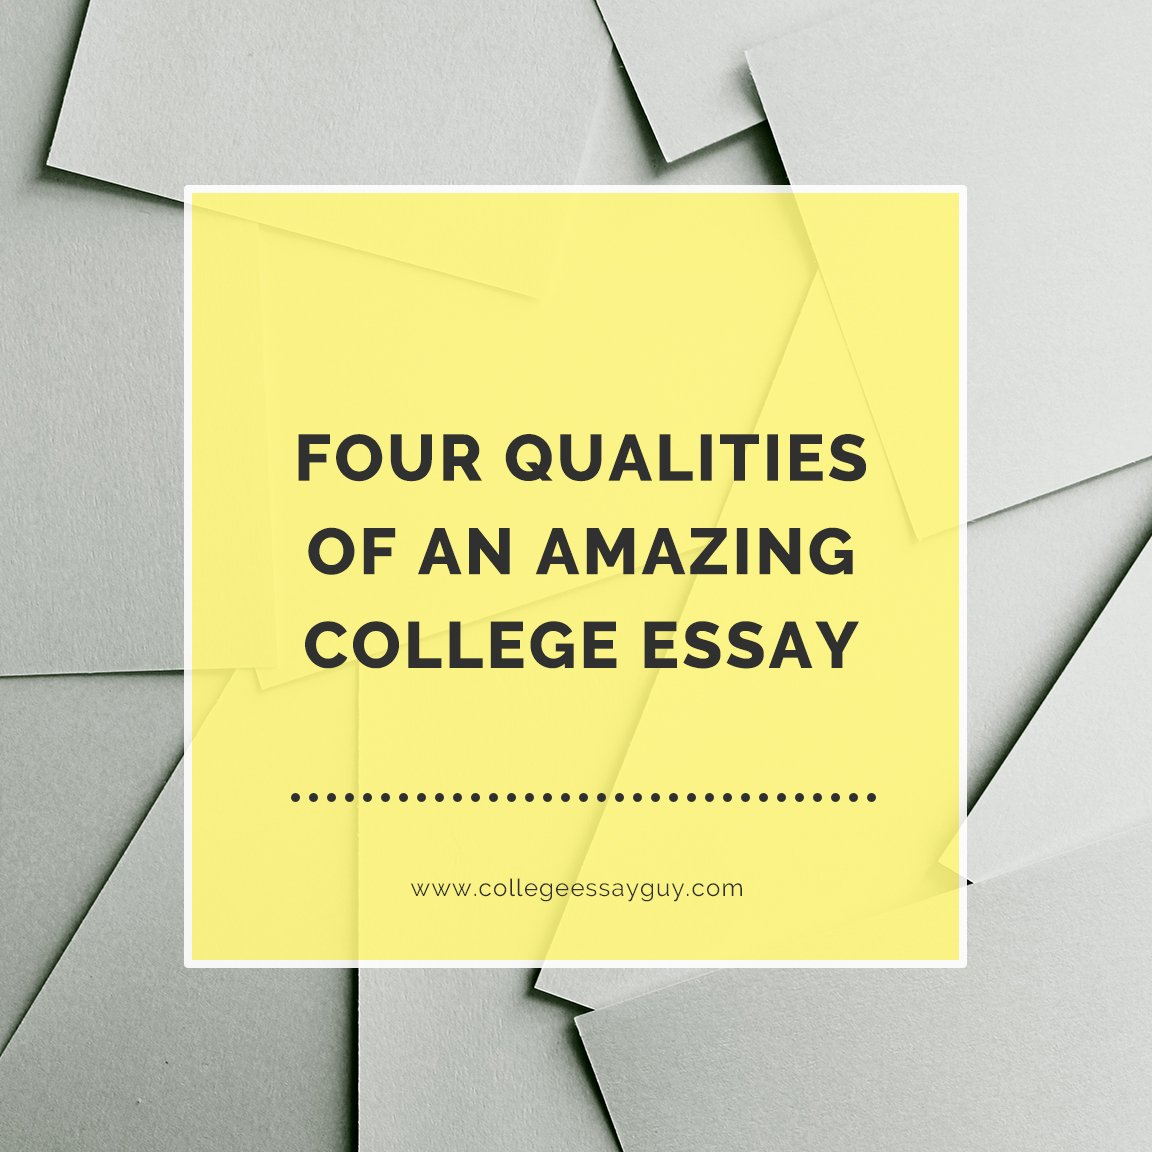 email cover letter sales associate That's How Busy Students Get Amazing Essays!